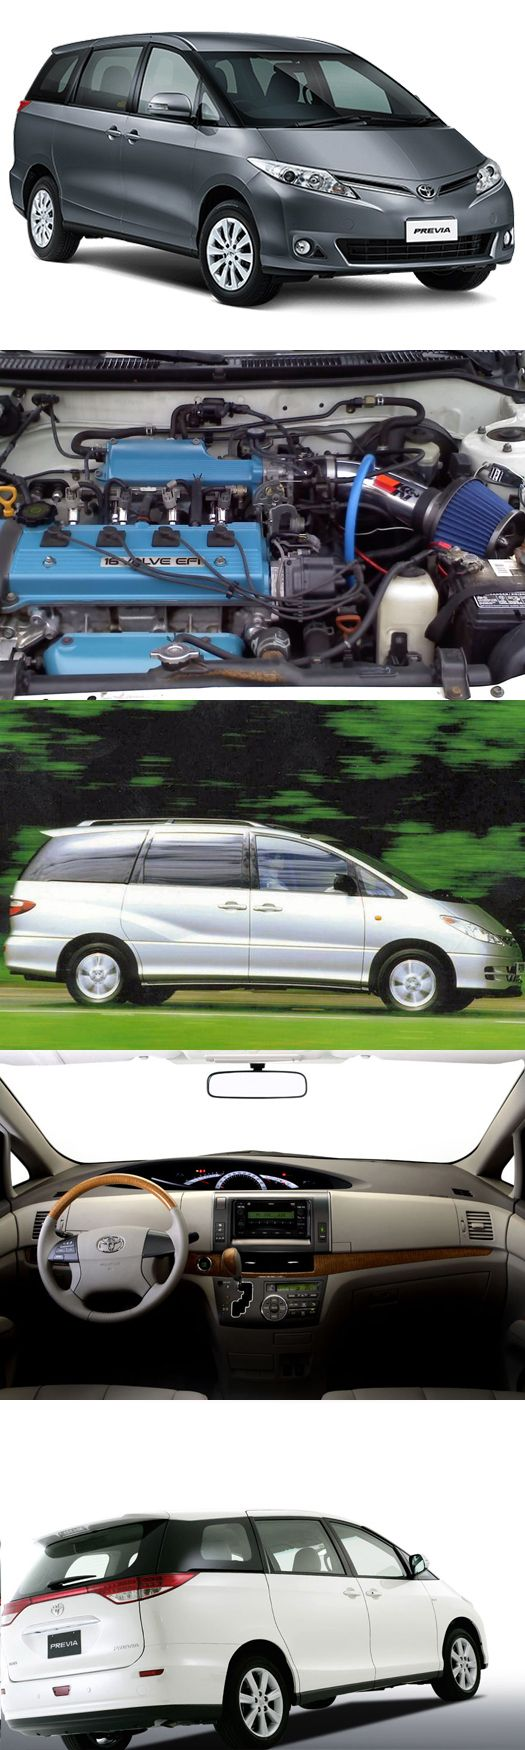 #Toyota #Previa a name of Perfection read more: http://www.engines4sale.co.uk/blog/toyota-previa-a-name-of-perfection/